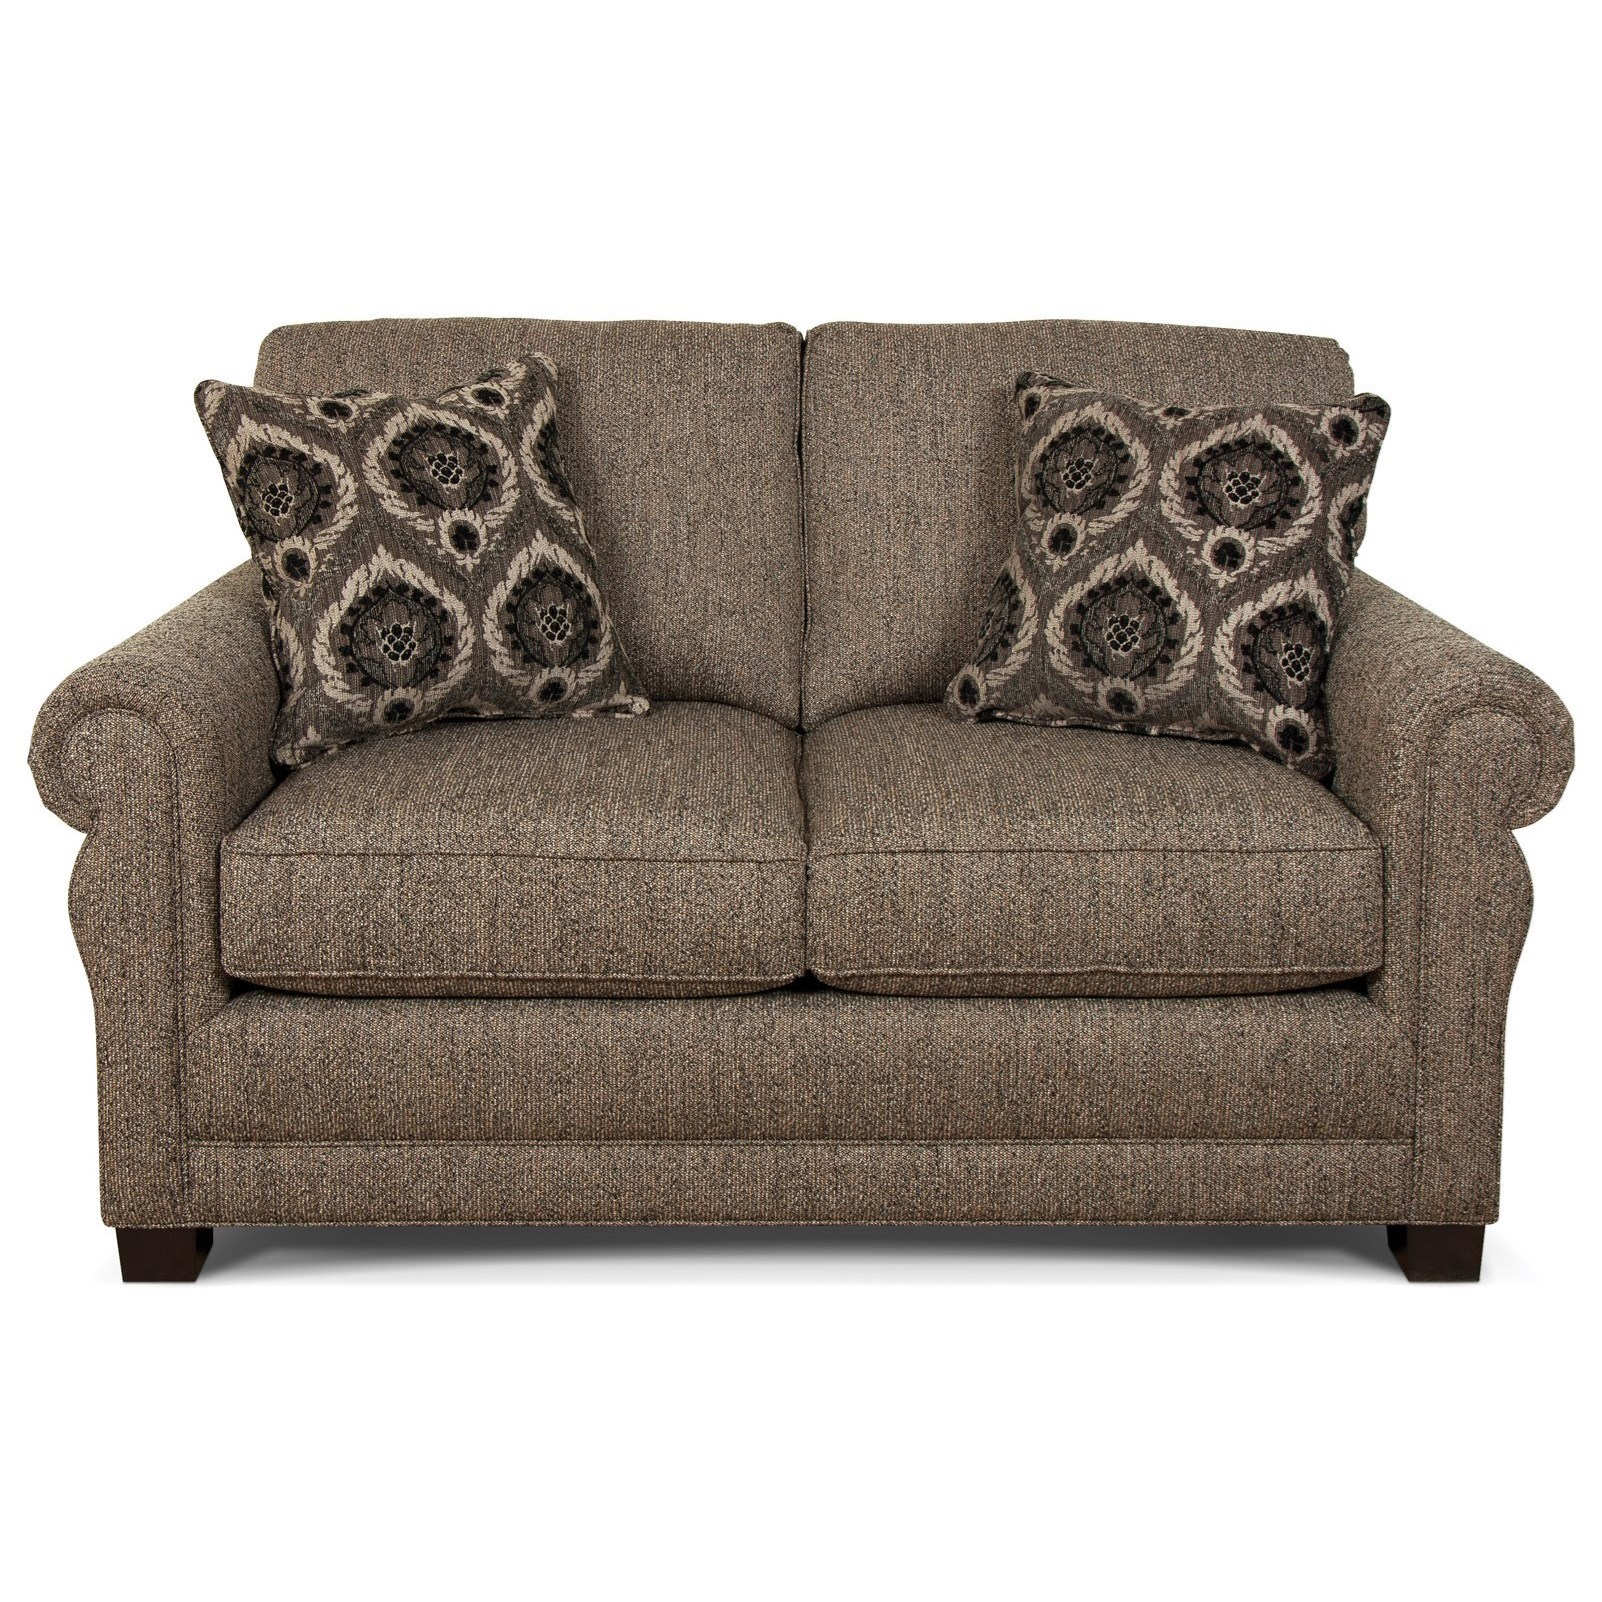 Green Two Cushion Loveseat With Traditional Style By England At Miller Home